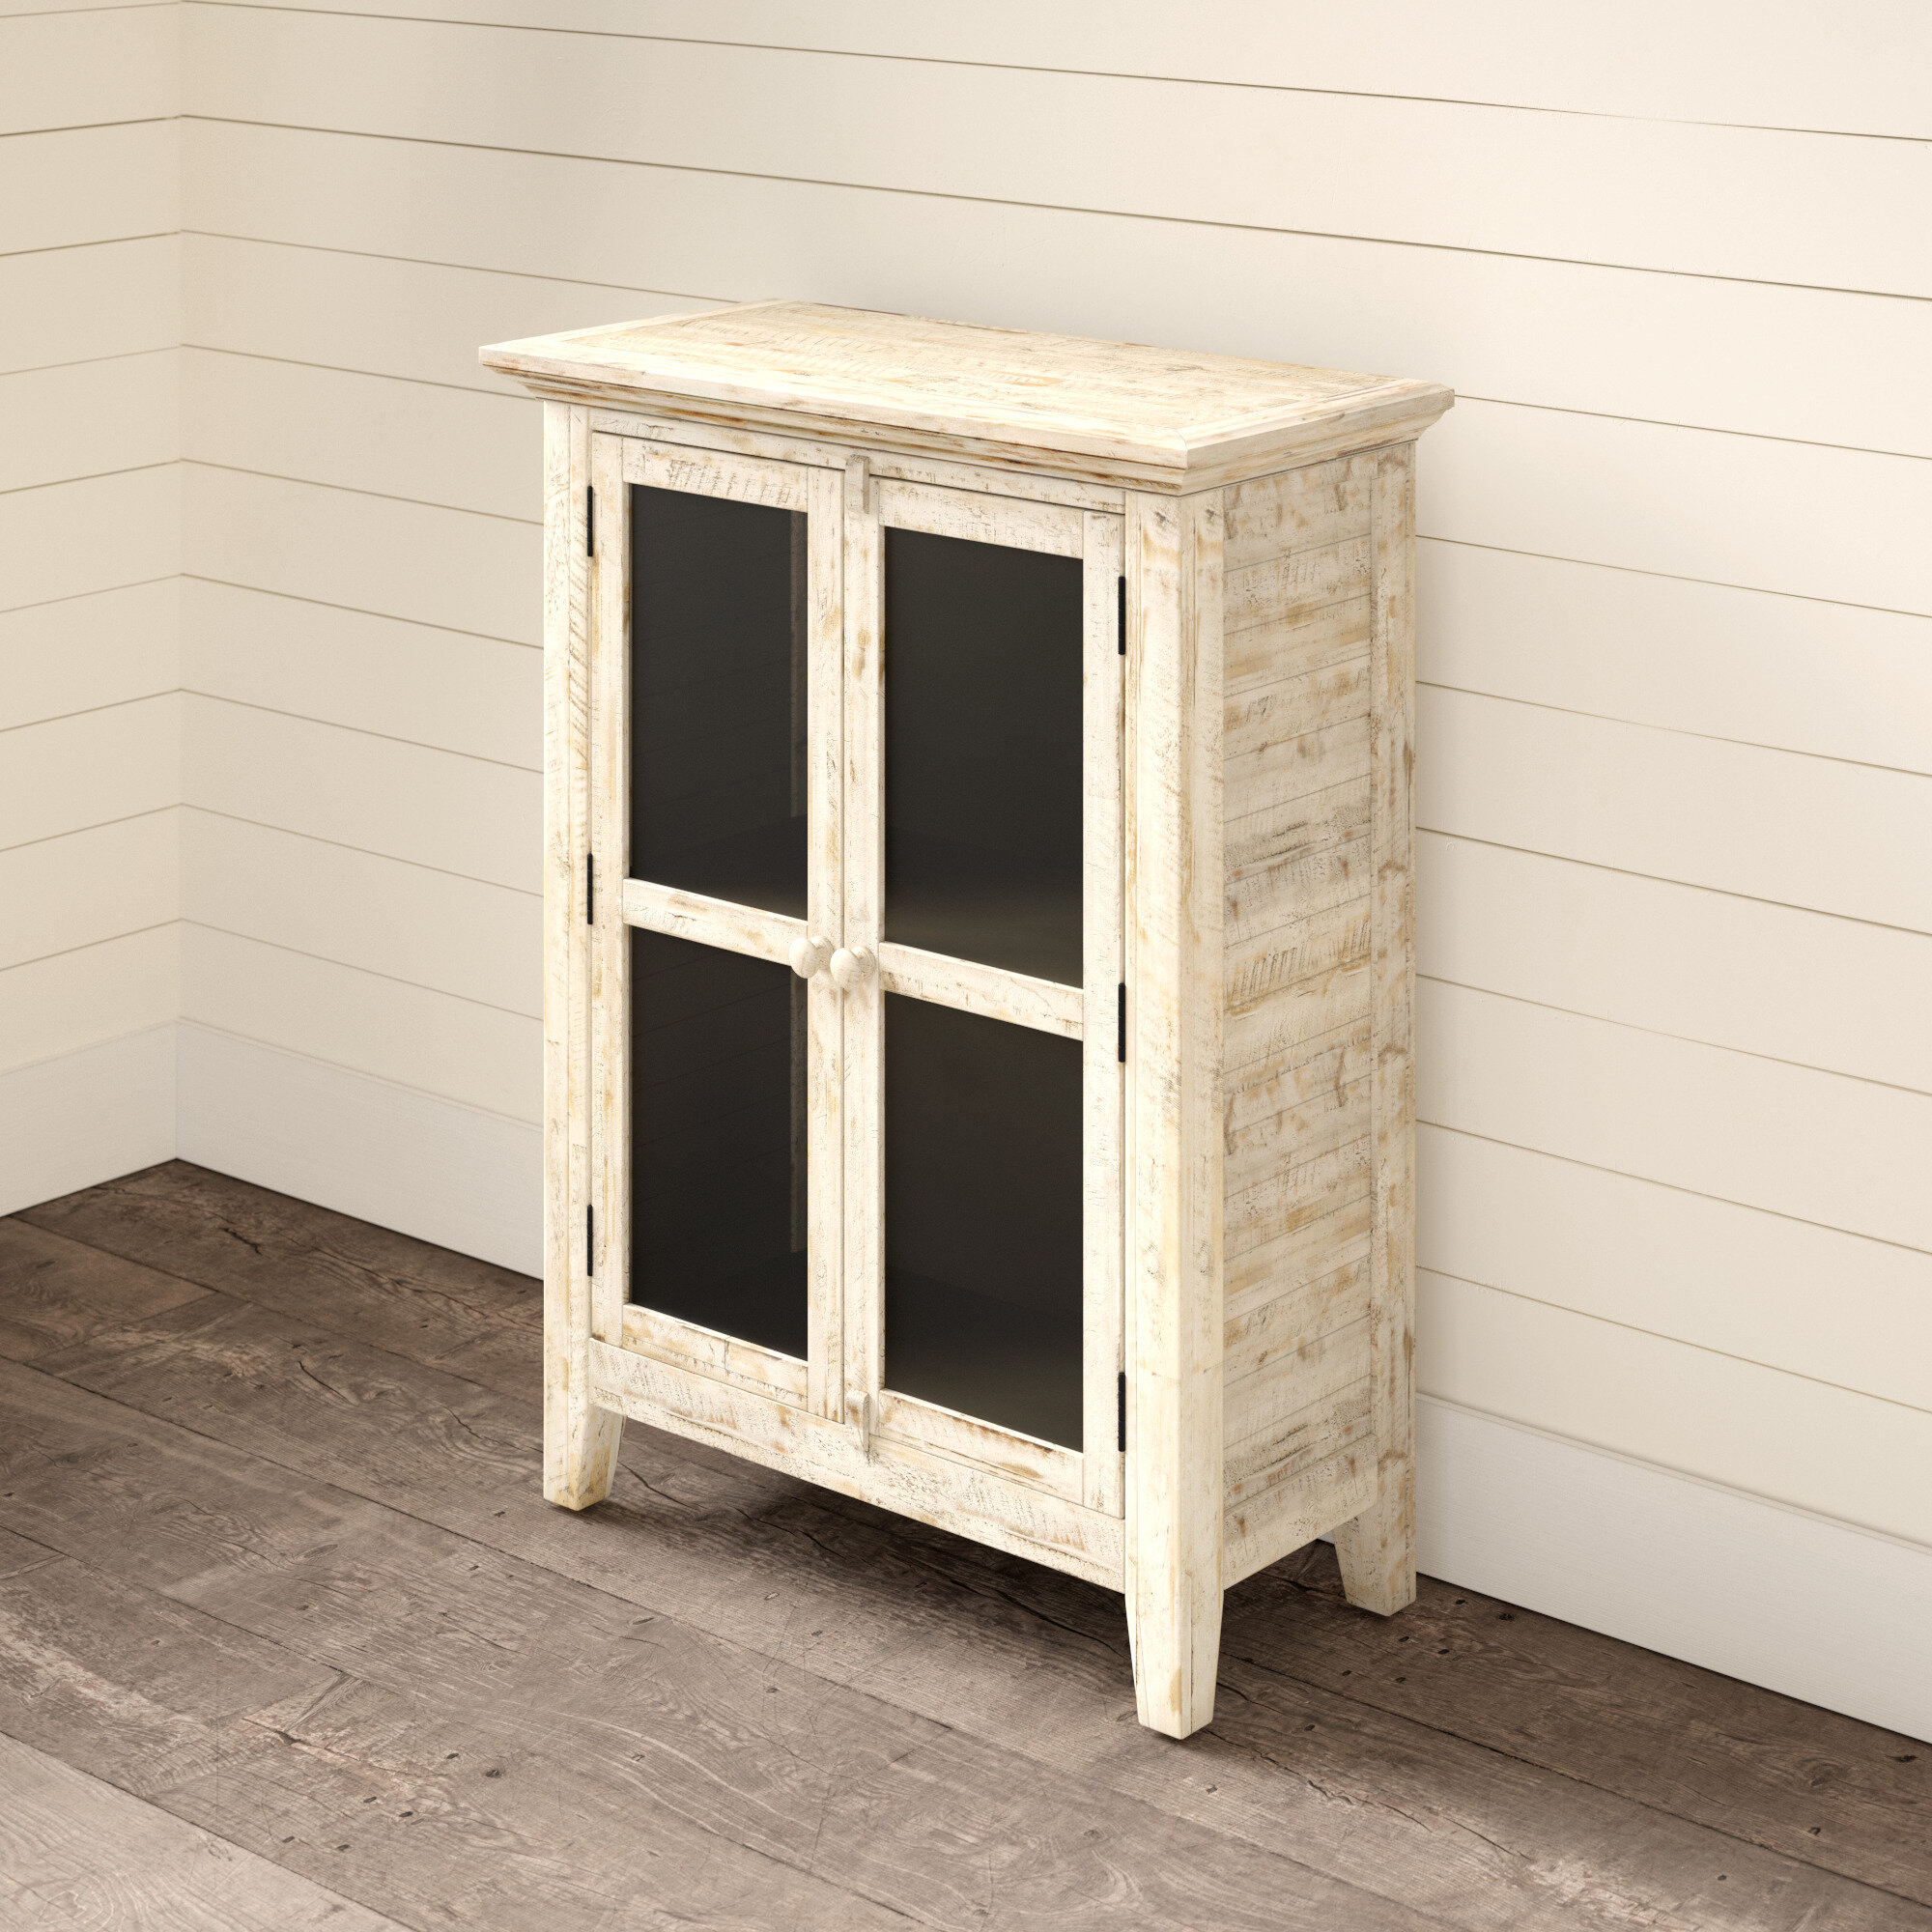 Eau Claire 2 Door Accent Cabinet Regarding Eau Claire 6 Door Accent Cabinets (Gallery 9 of 30)